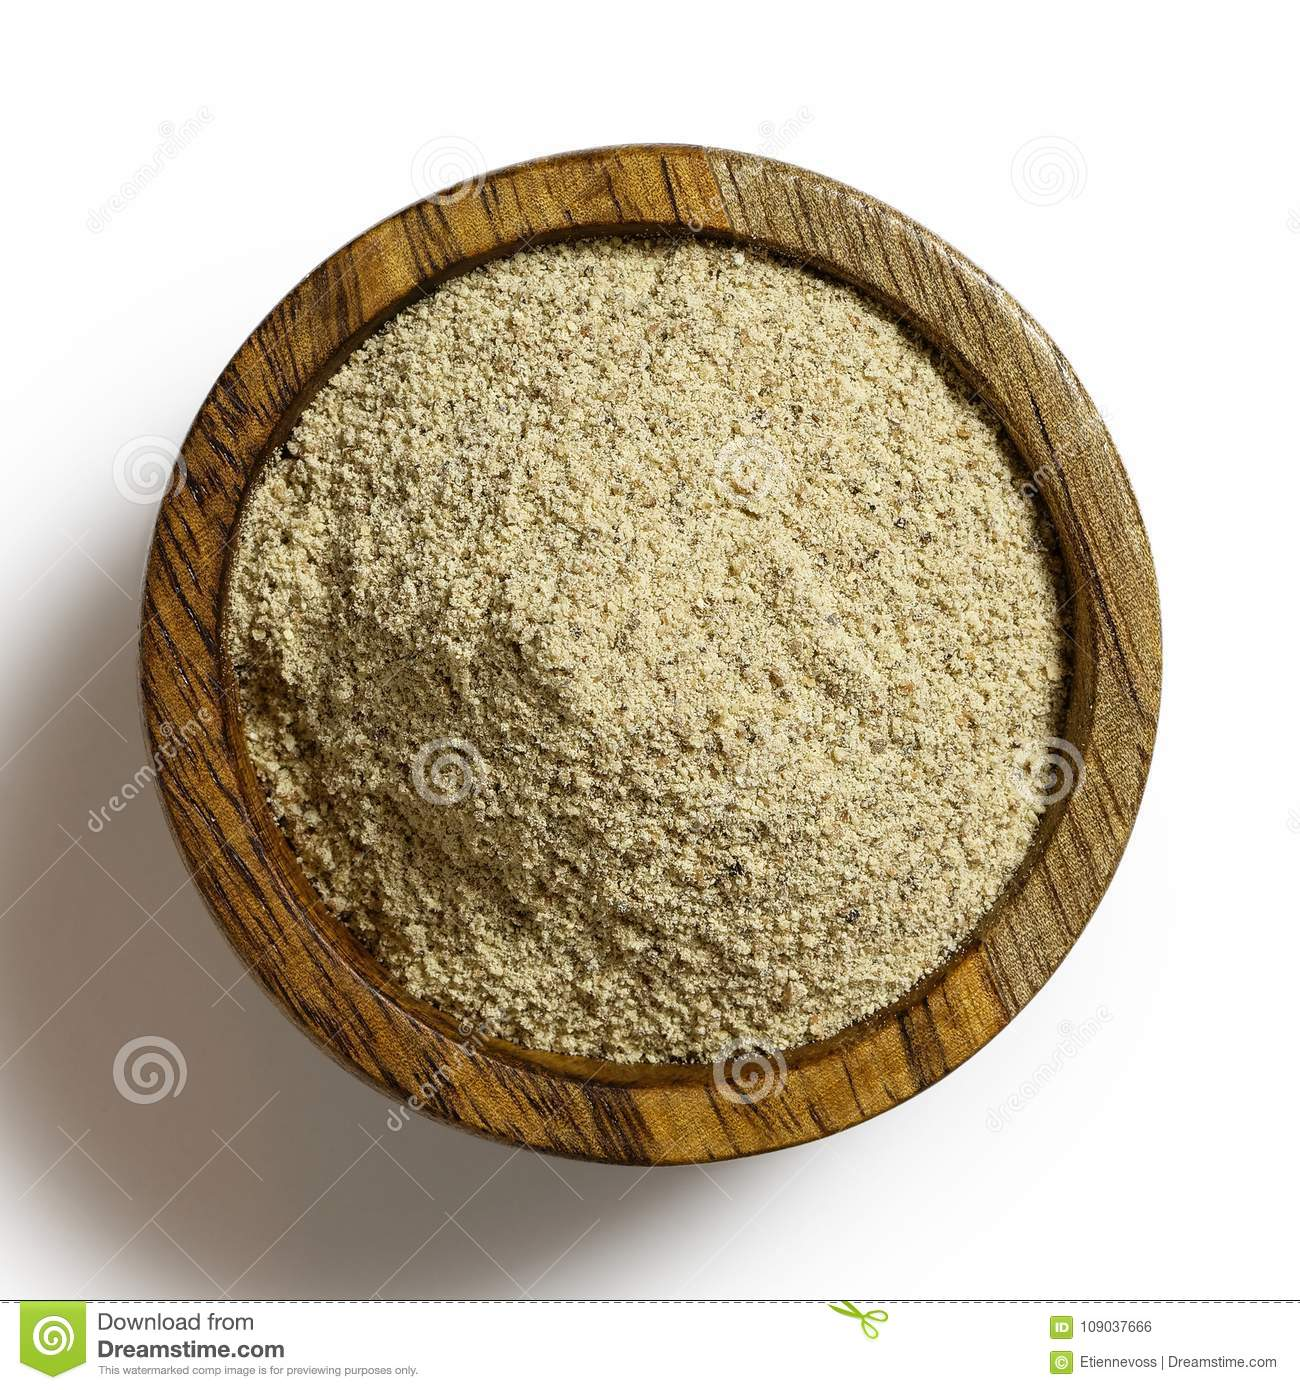 Finely ground white pepper in dark wood bowl isolated on white.